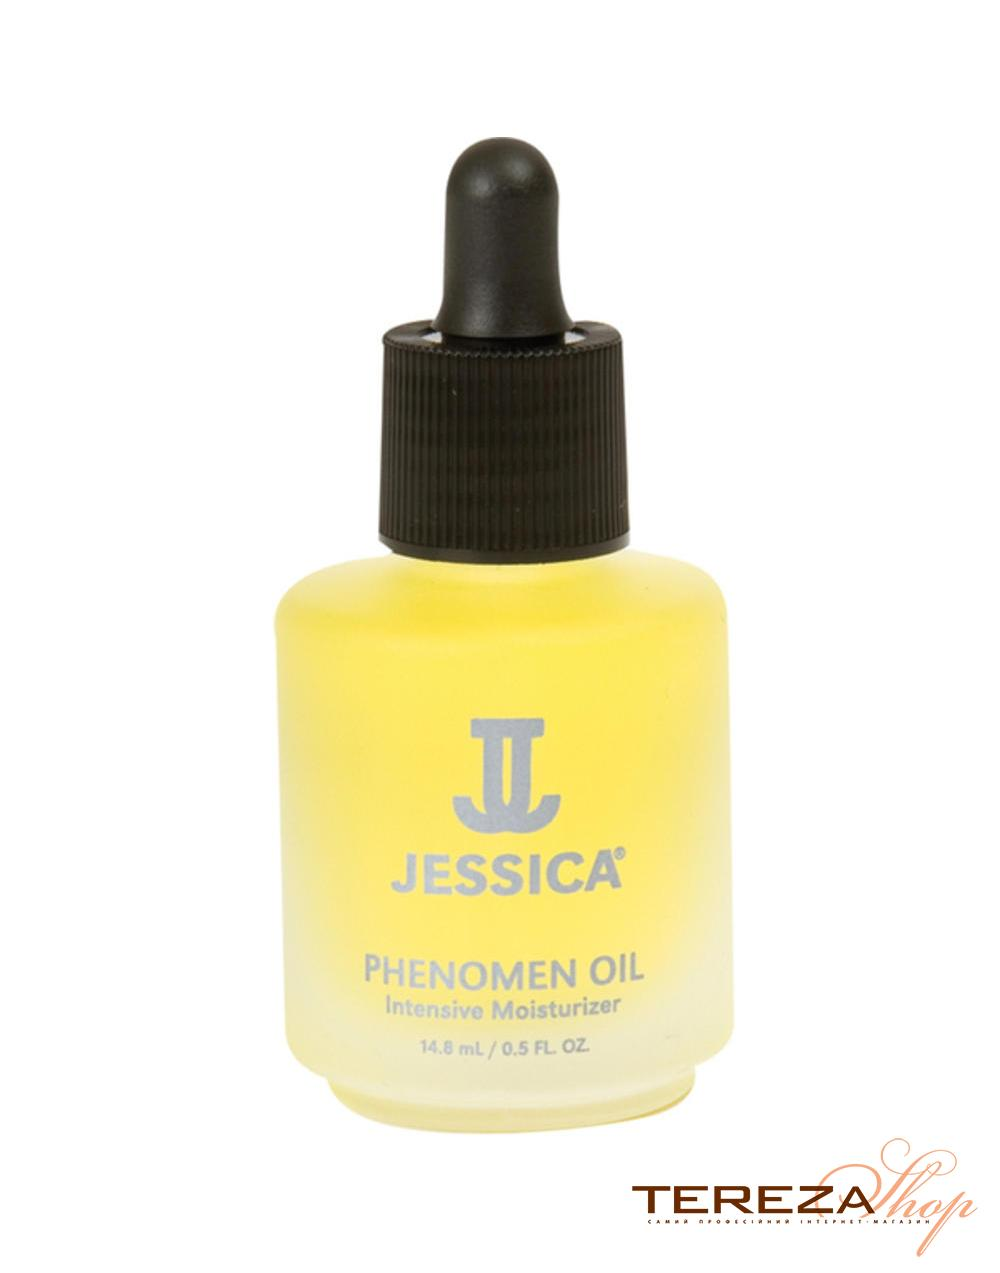 PHENOMEN OIL JESSICA | Tereza Shop